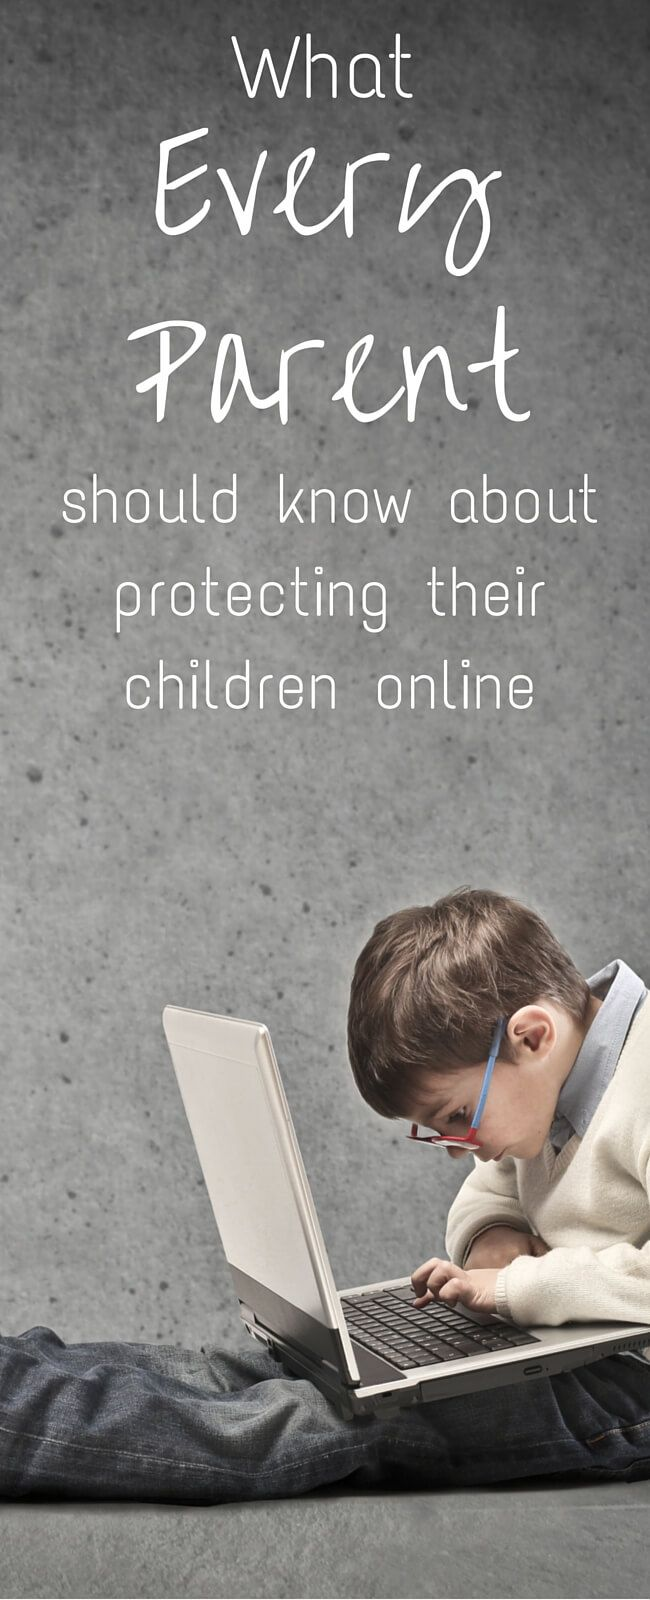 The Internet can be a wonderful, educational place. However, it presents many dangers for children and families. HEre is everything you need to know about protecting your children online, and what kind of threads your children might be facing. via @clarkscondensed